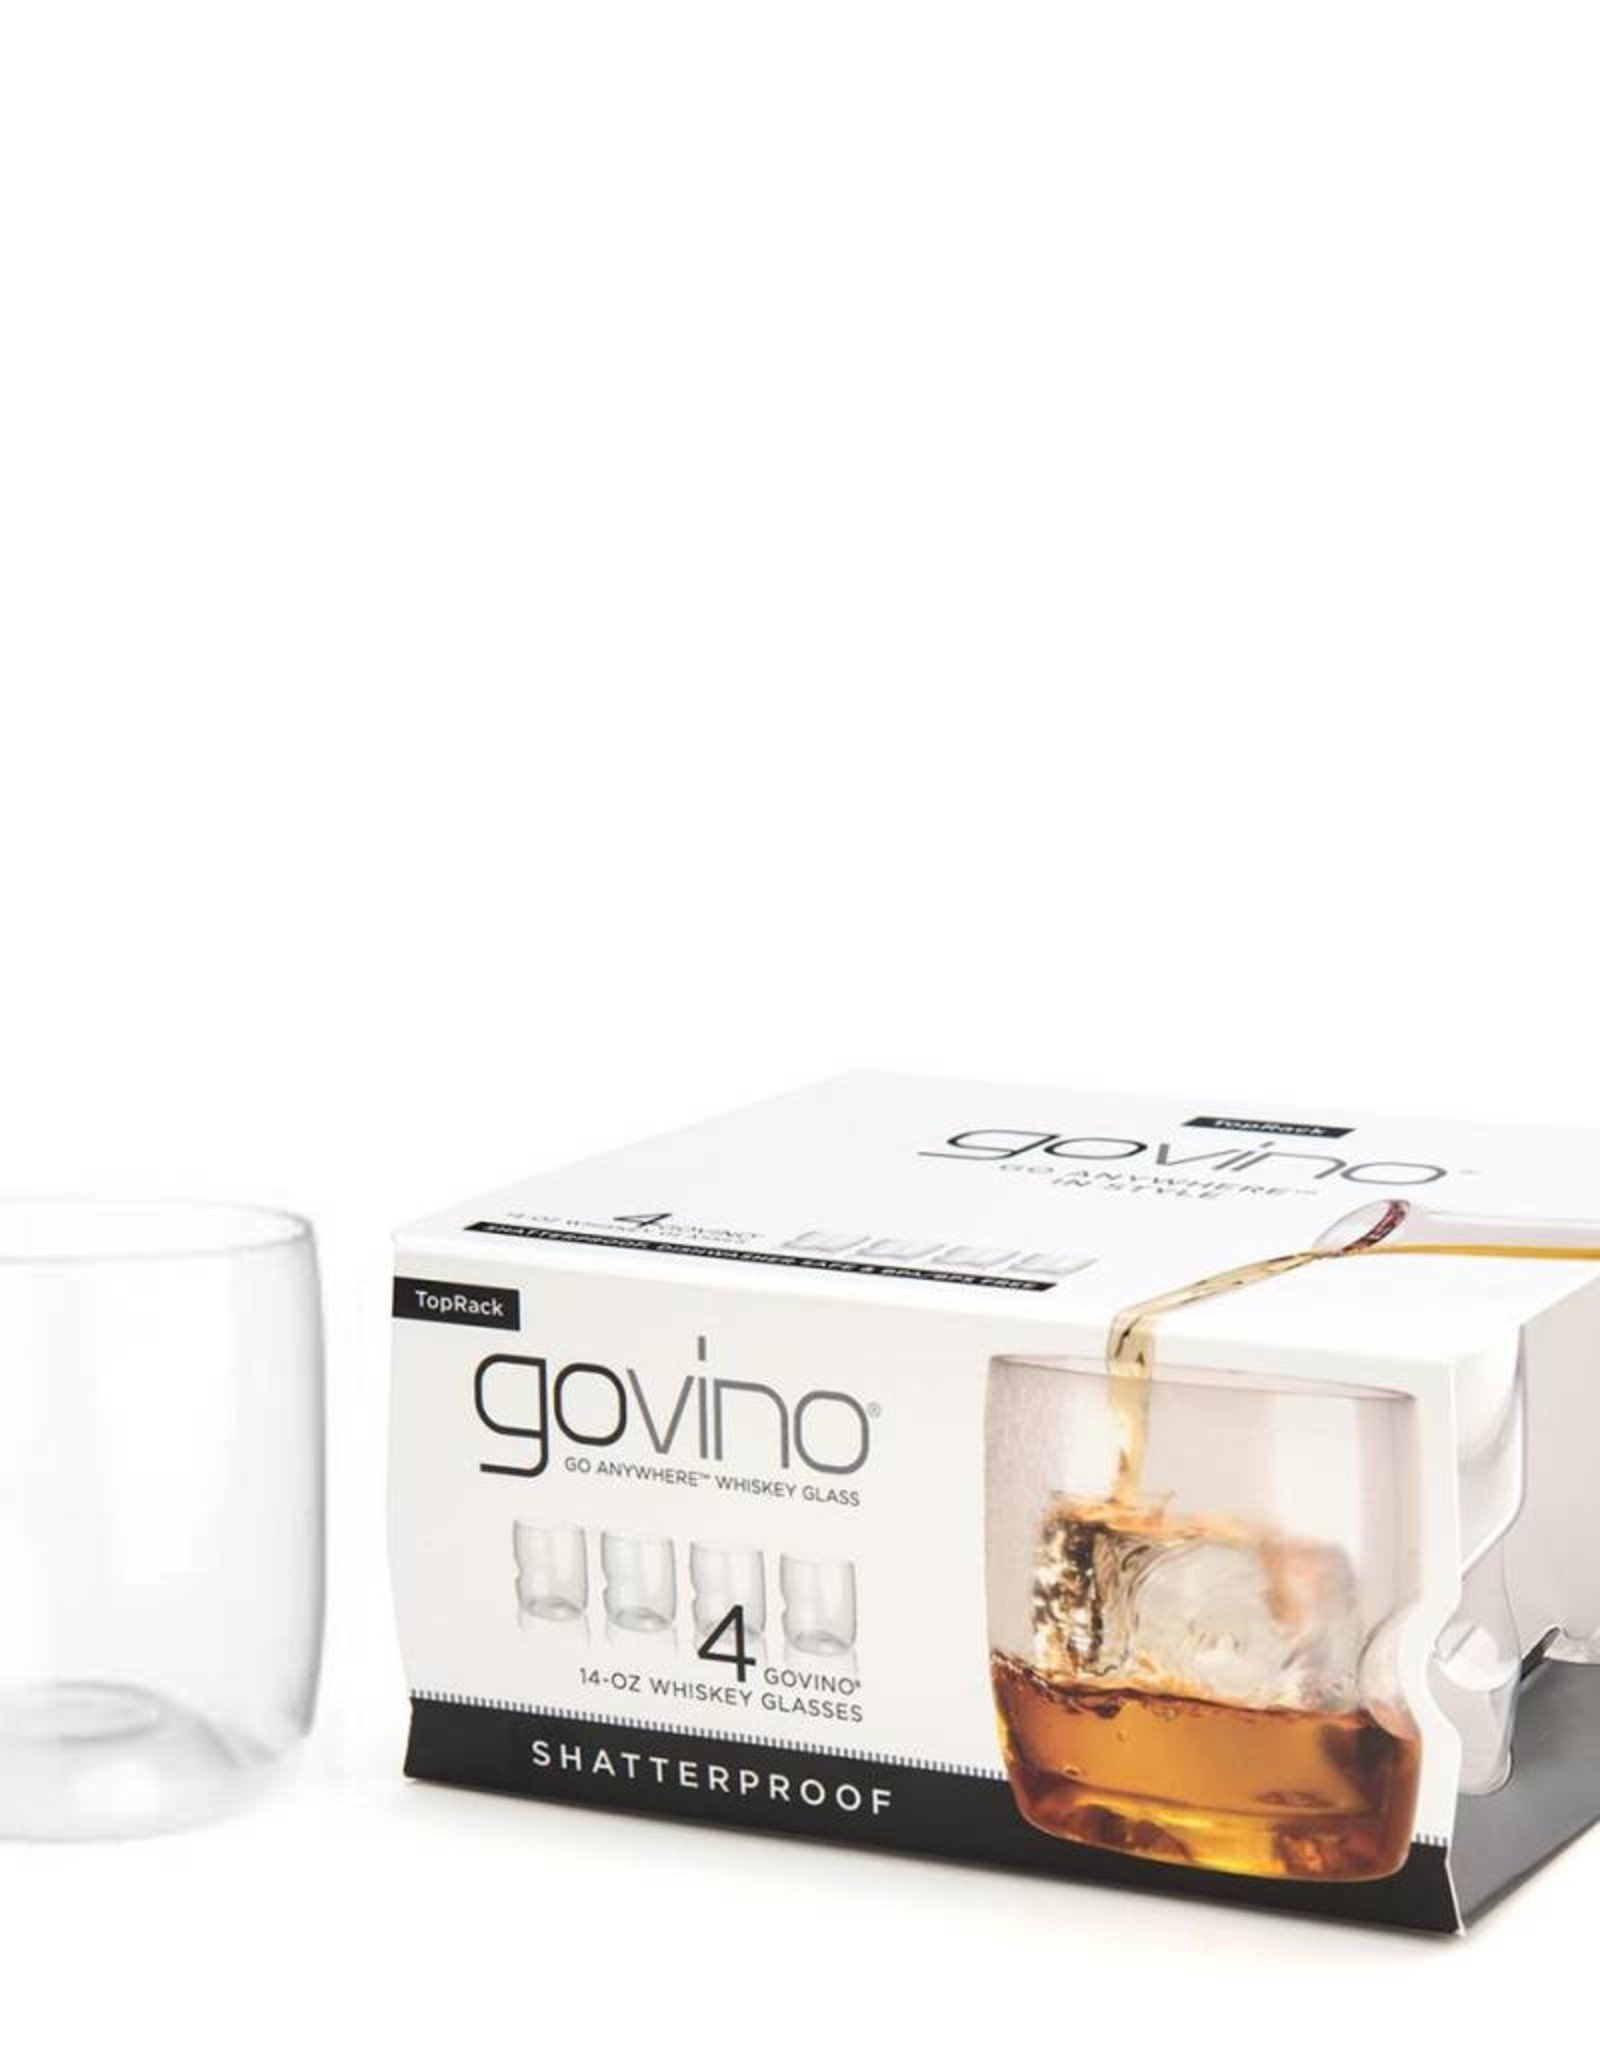 Go Vino 14 OZ Whiskey Glasses Set/4